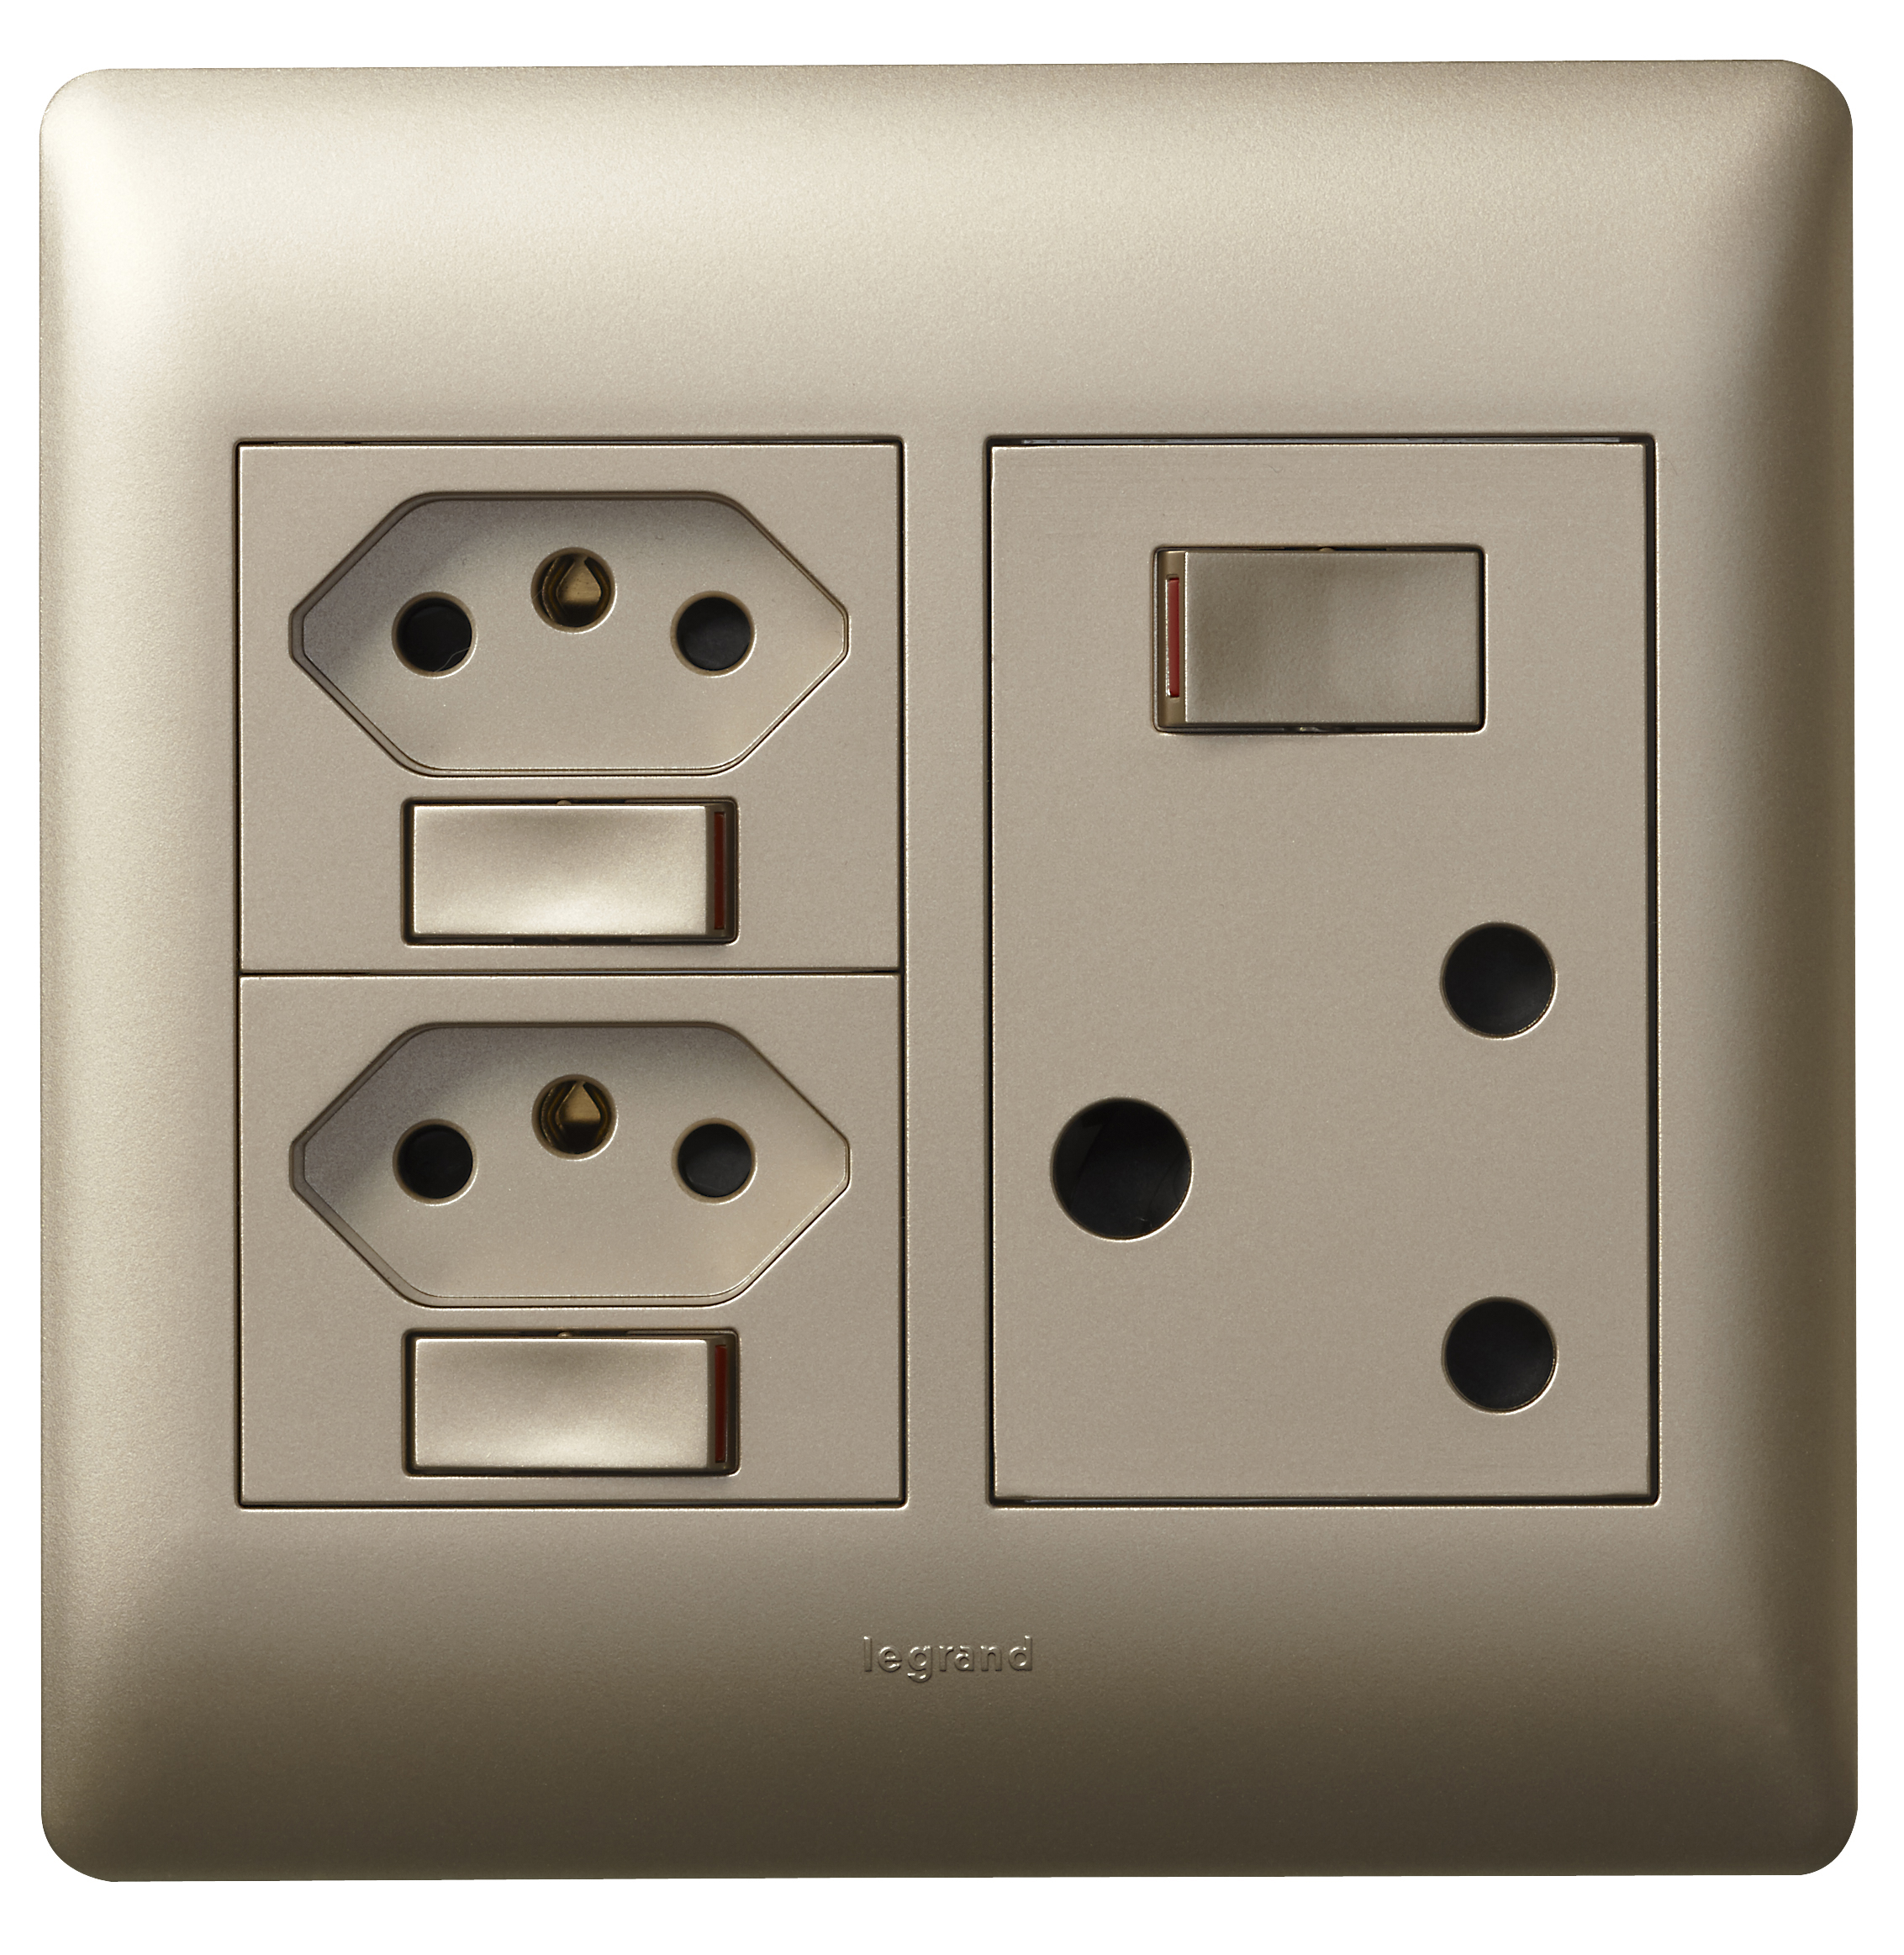 Legrands Ysalis Switches And Sockets Have Recently Been Launched In South Africa The Companys Strategy To Introduce A Chic Range Of Wiring Devices